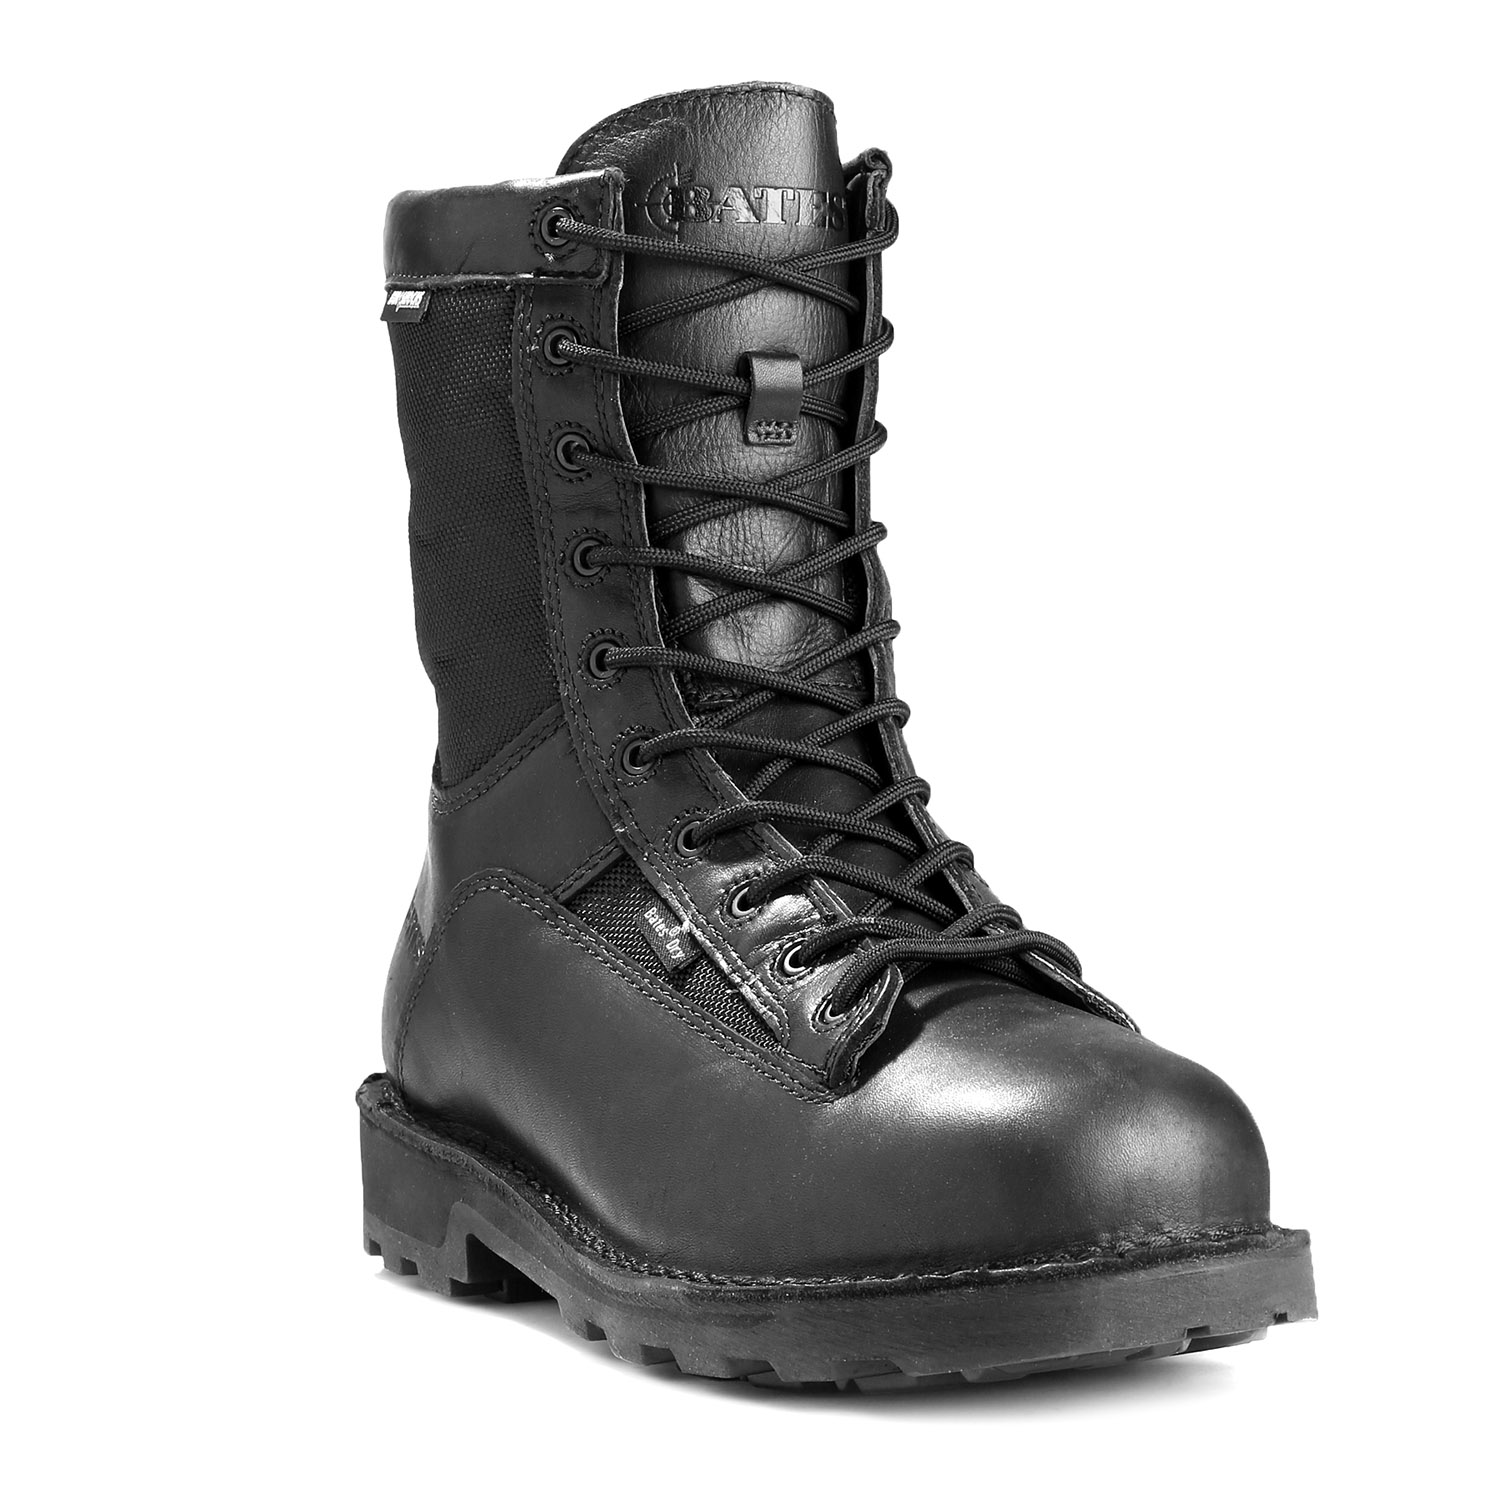 "Bates 8"" DuraShocks Waterproof Boot"